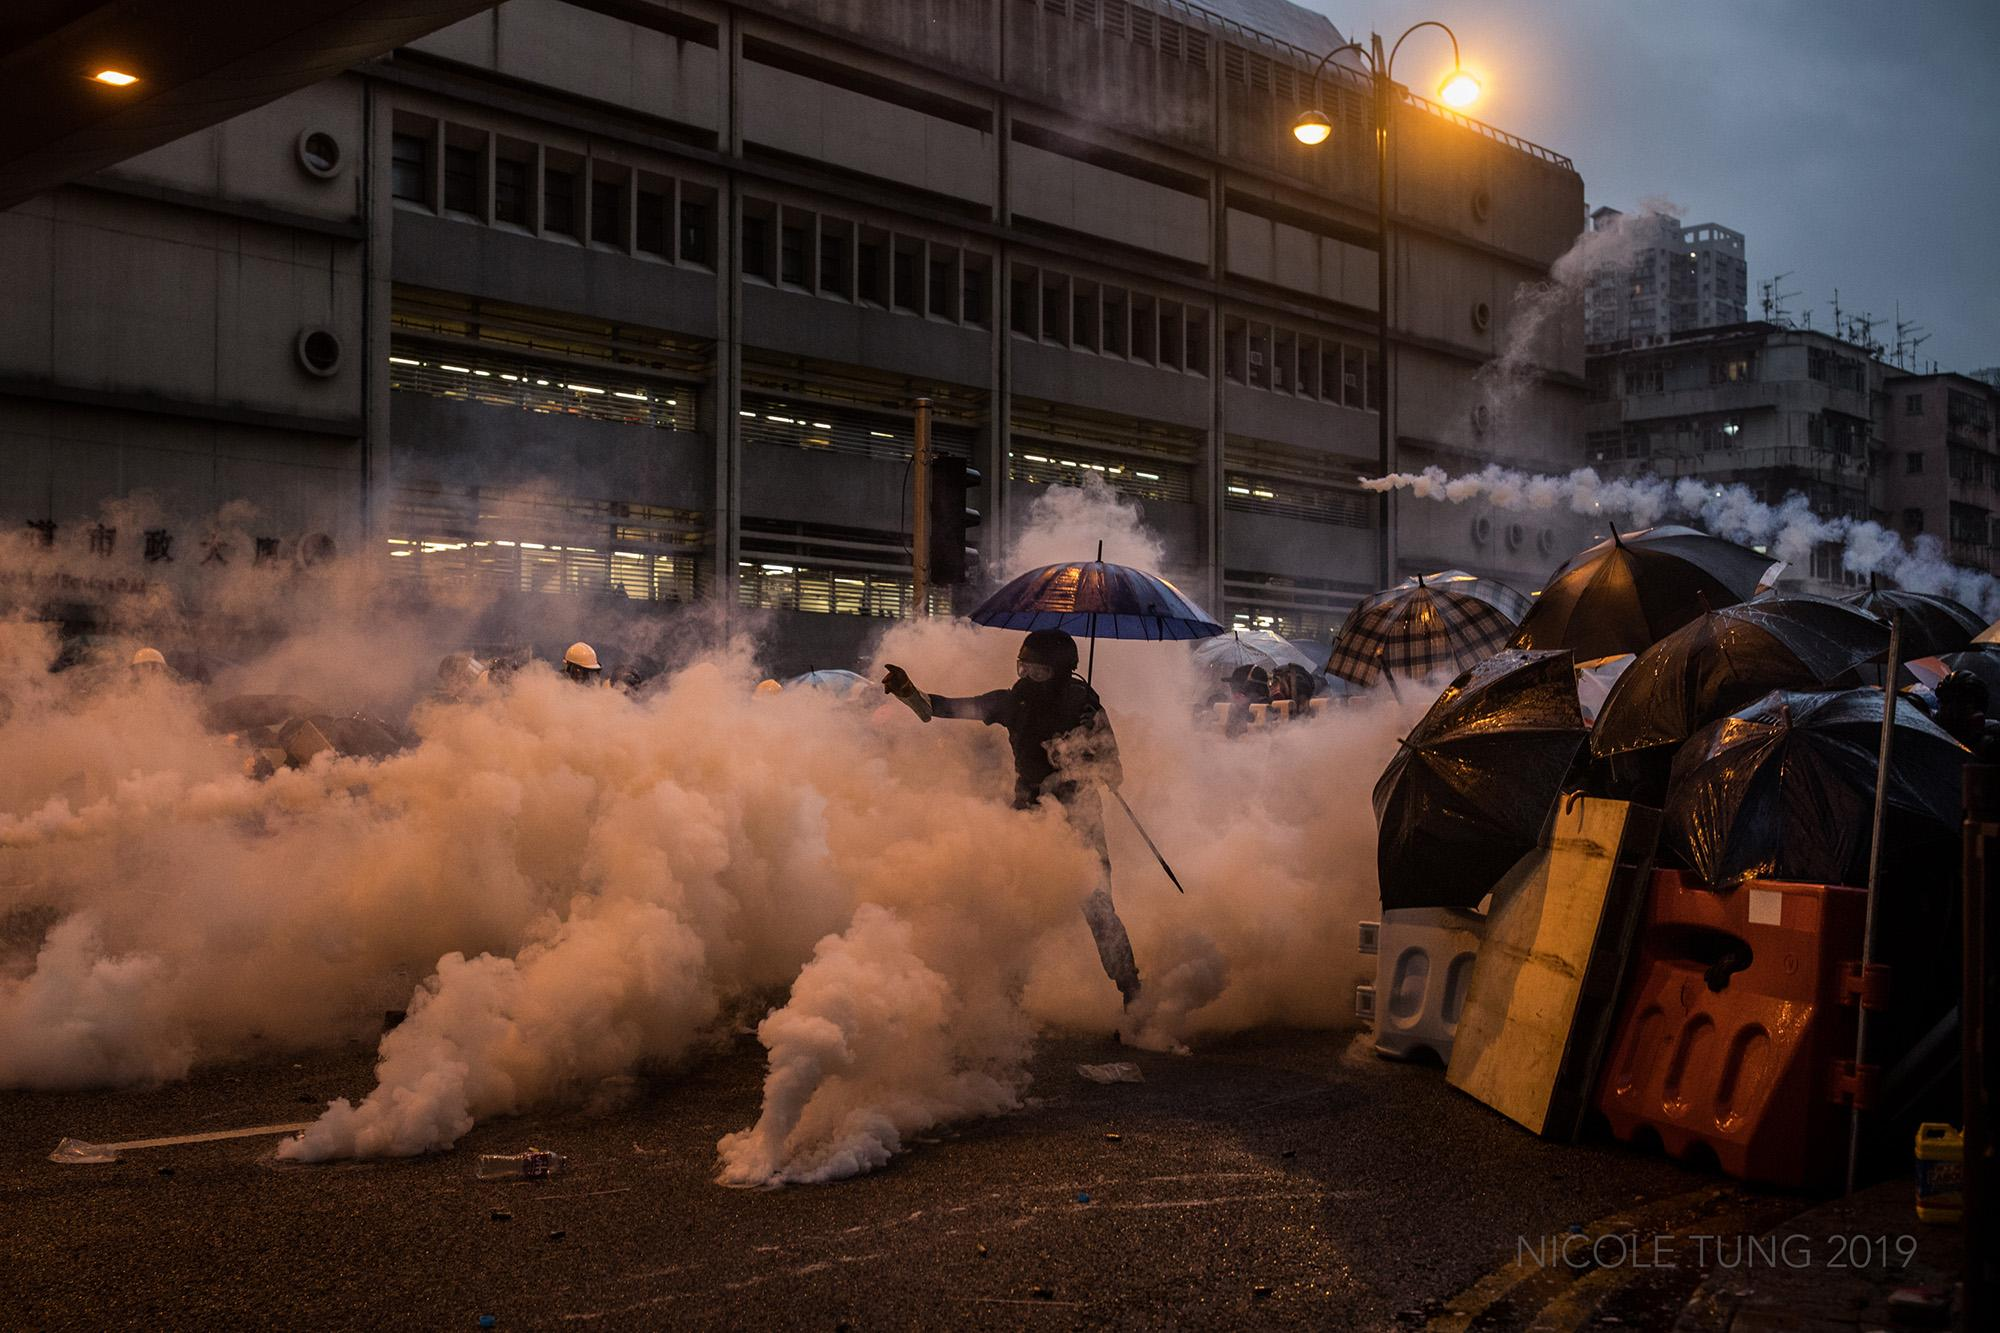 A protestor throws a tear gas canister back at the riot police in Tsuen Wan neighborhood in Hong Kong, S.A.R. following the end of a rally in which thousands participated. August 2019.